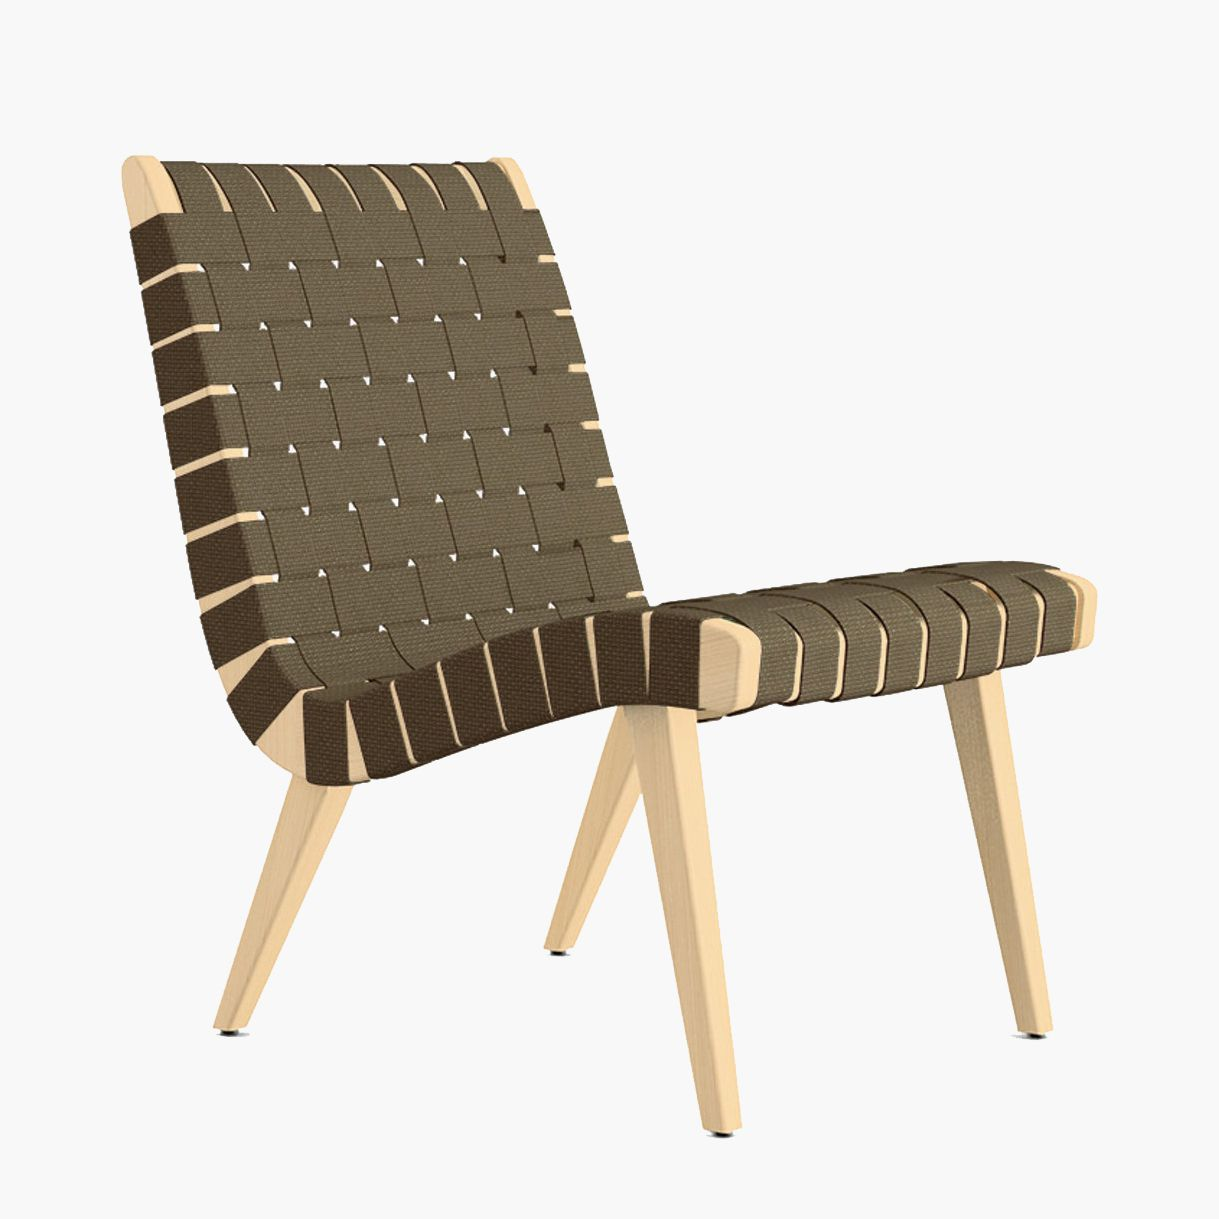 A modern lounge chair, currently for sale at Design Within Reach